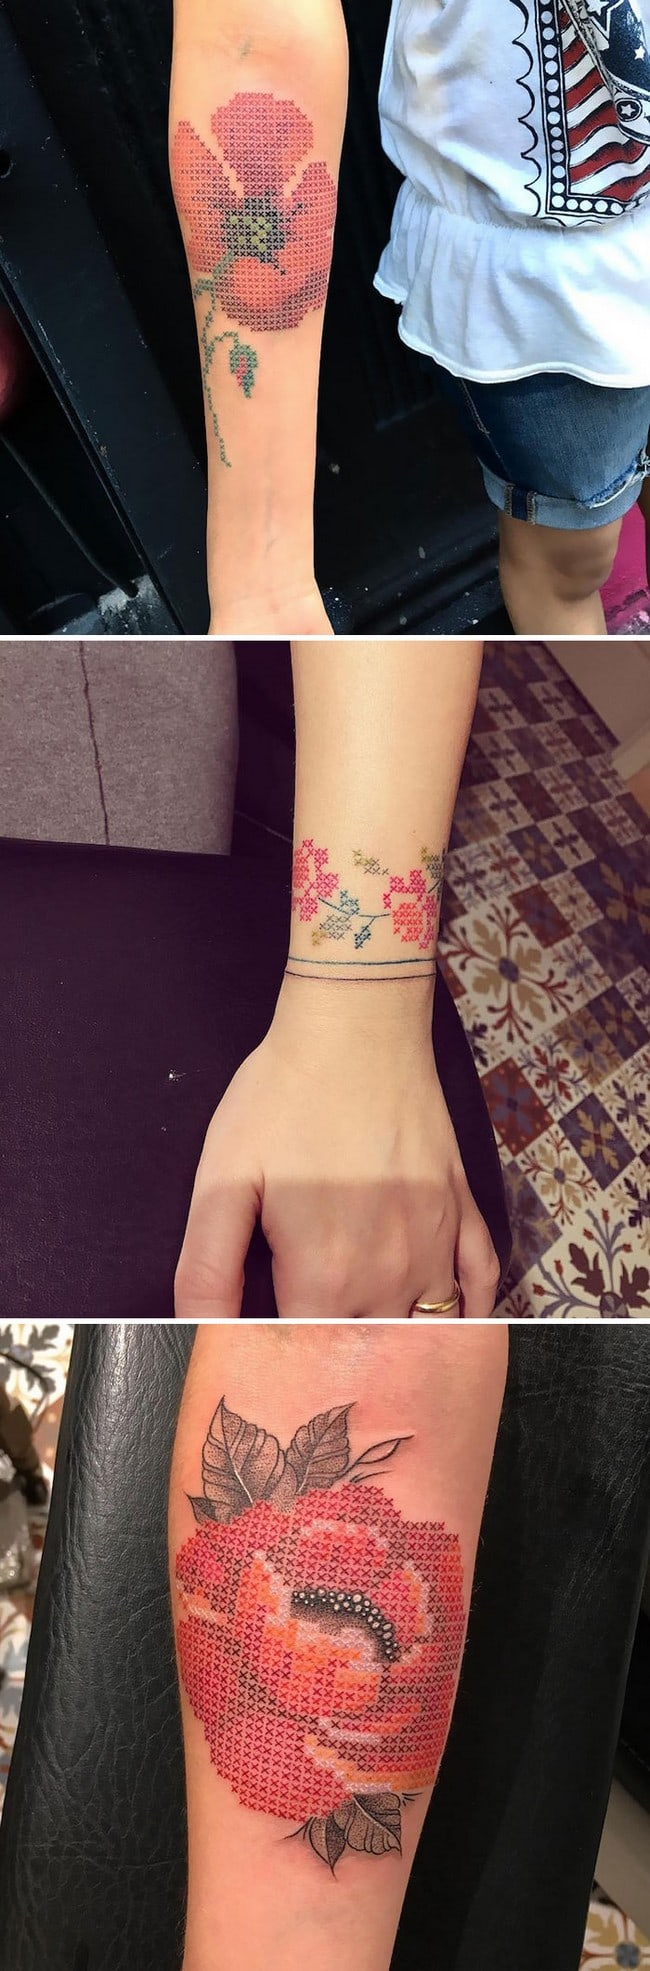 floral tattoo art eva krbdk